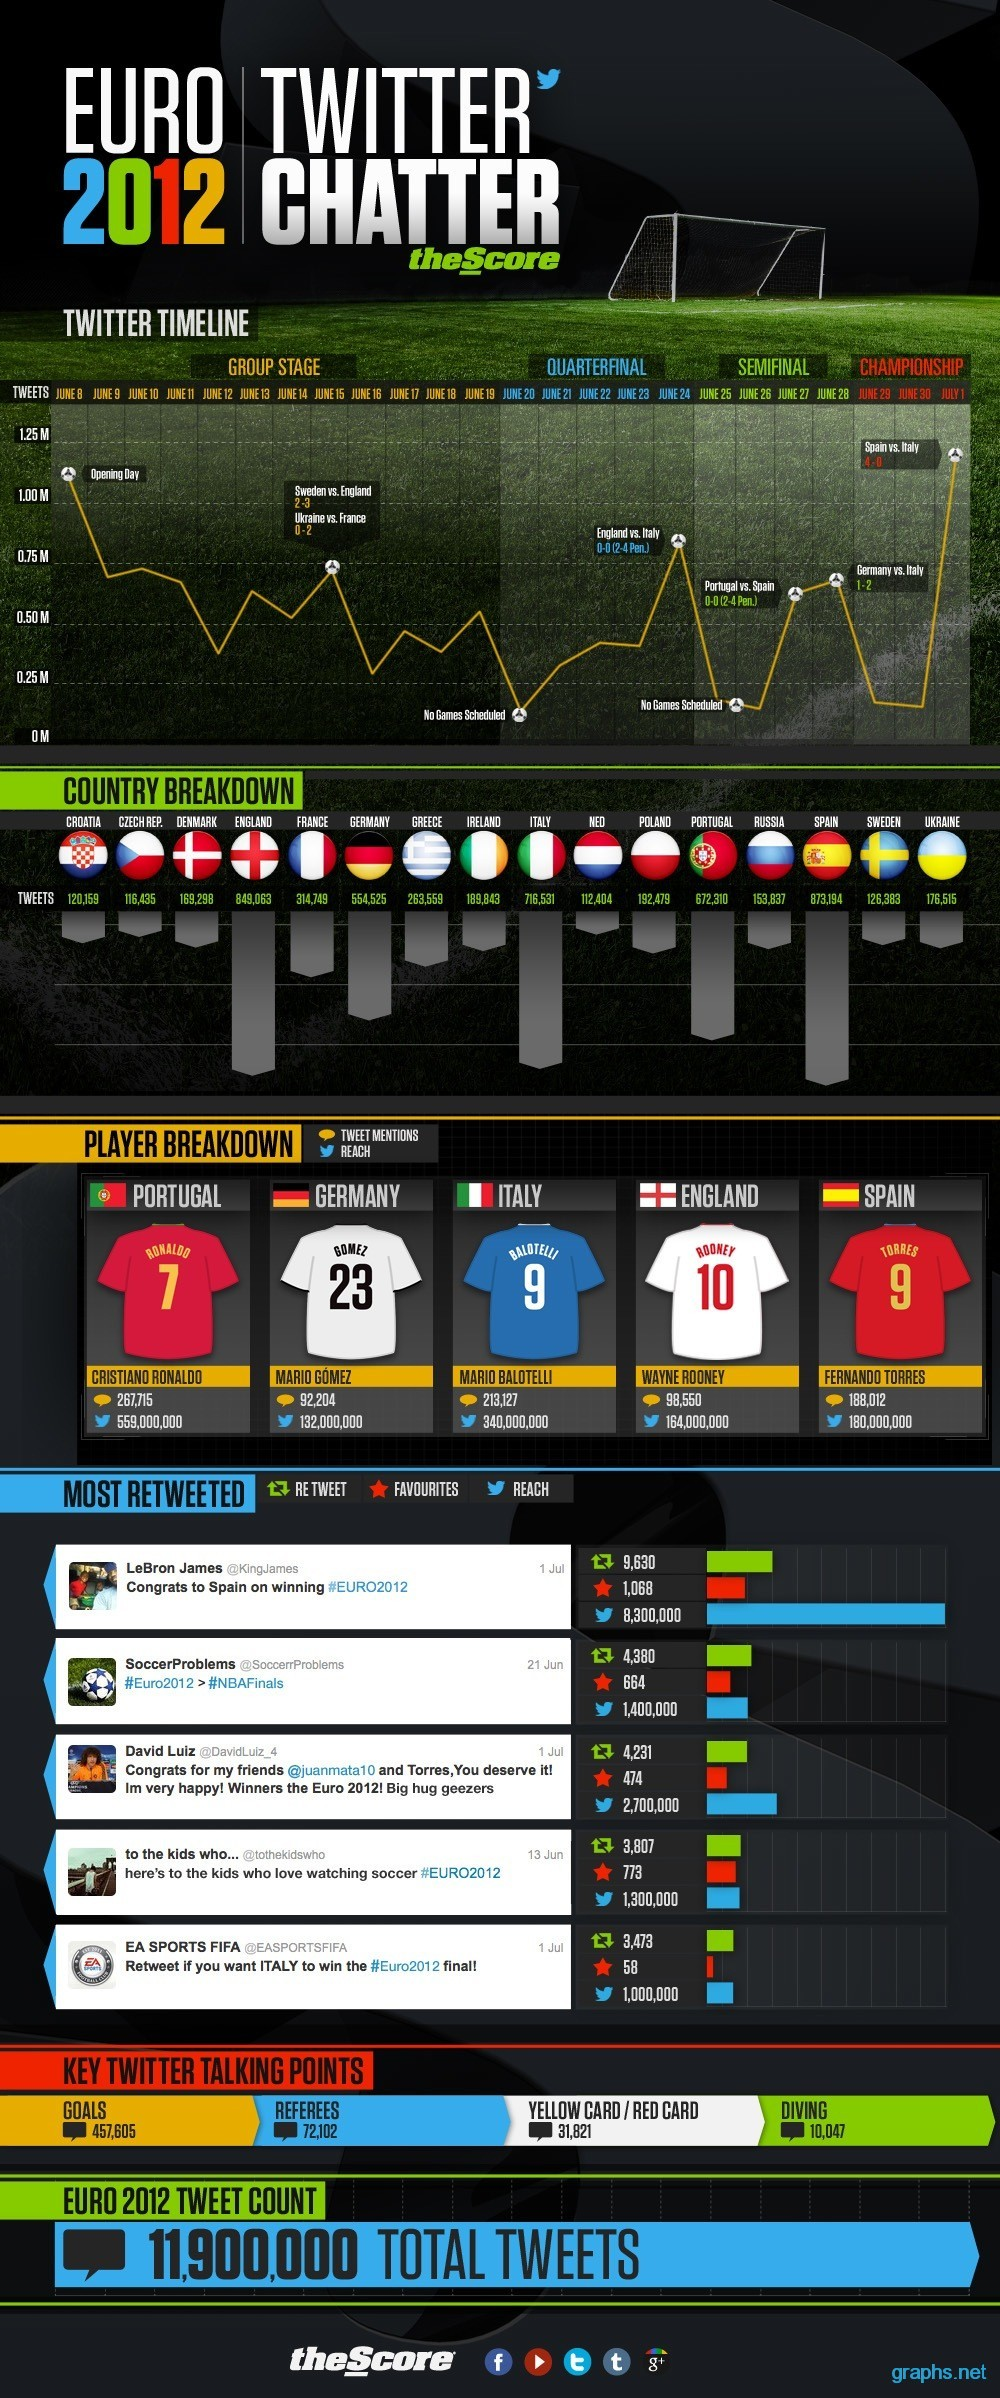 who won Euro 2012 in the Twittersphere?